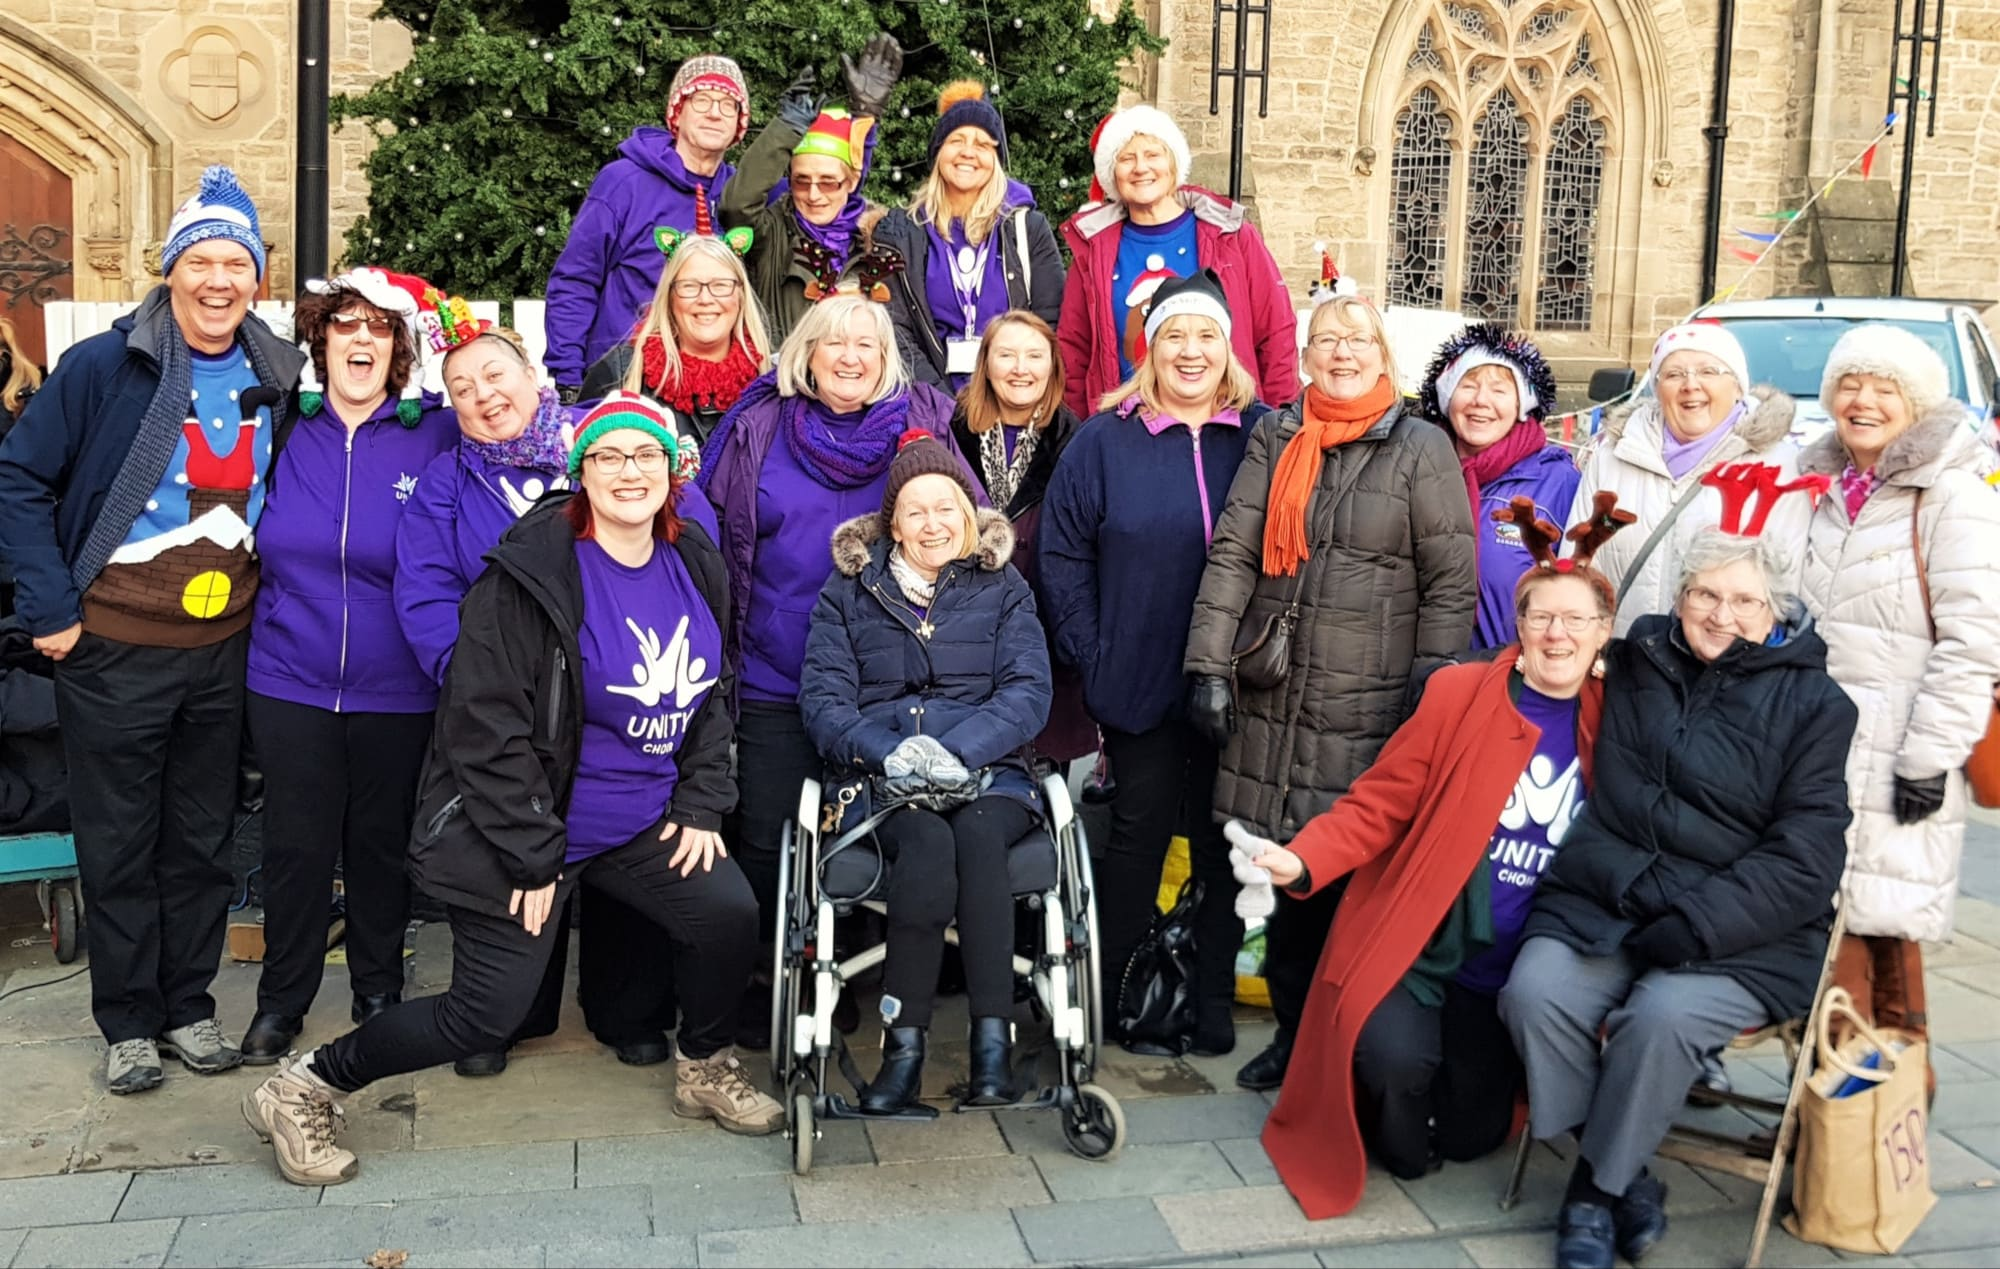 Unity Choir, led by The Singing Elf, Durham Market Place, Christmas 2018